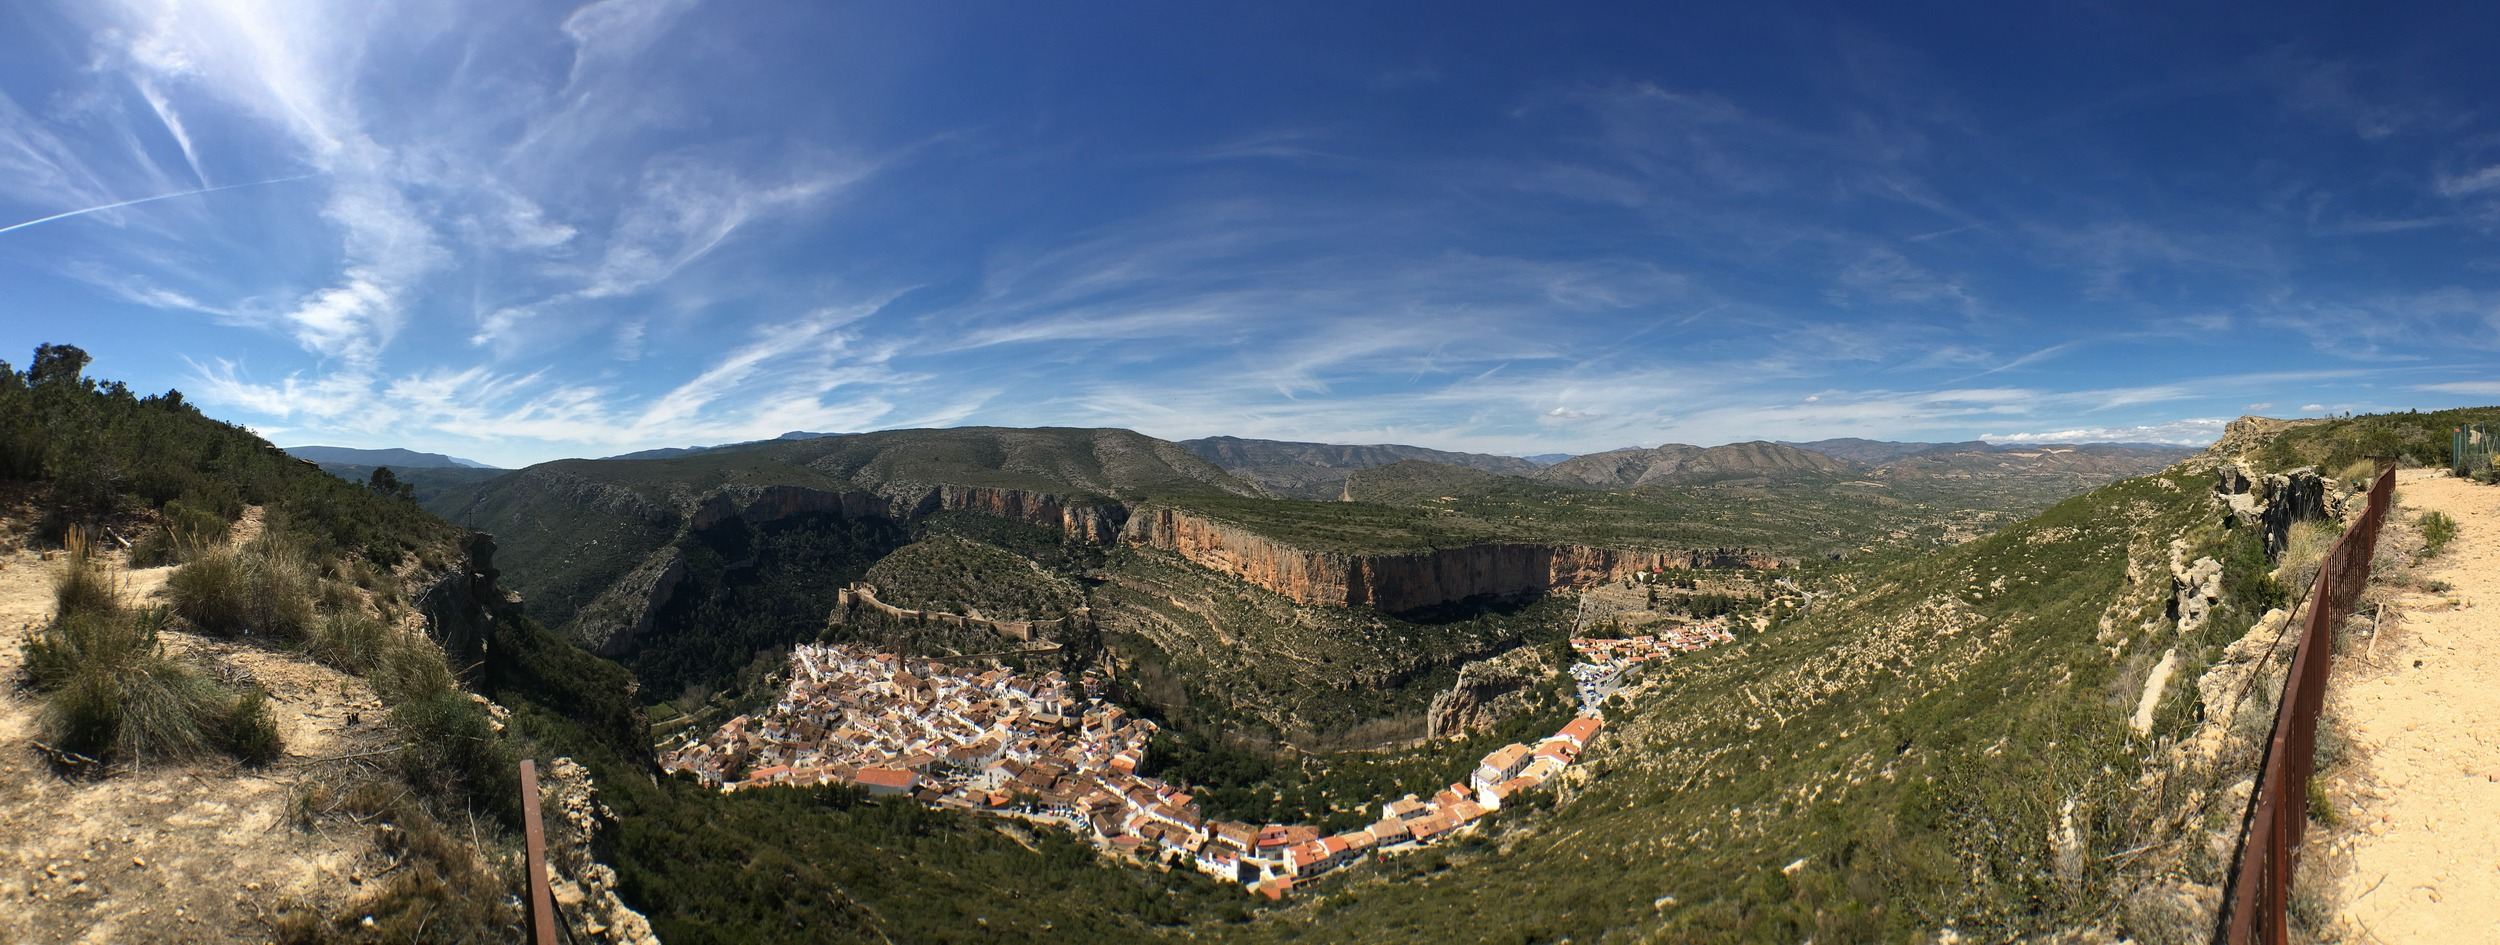 Chulilla from the top of the hill - highly recommended walk if anyone makes it out there